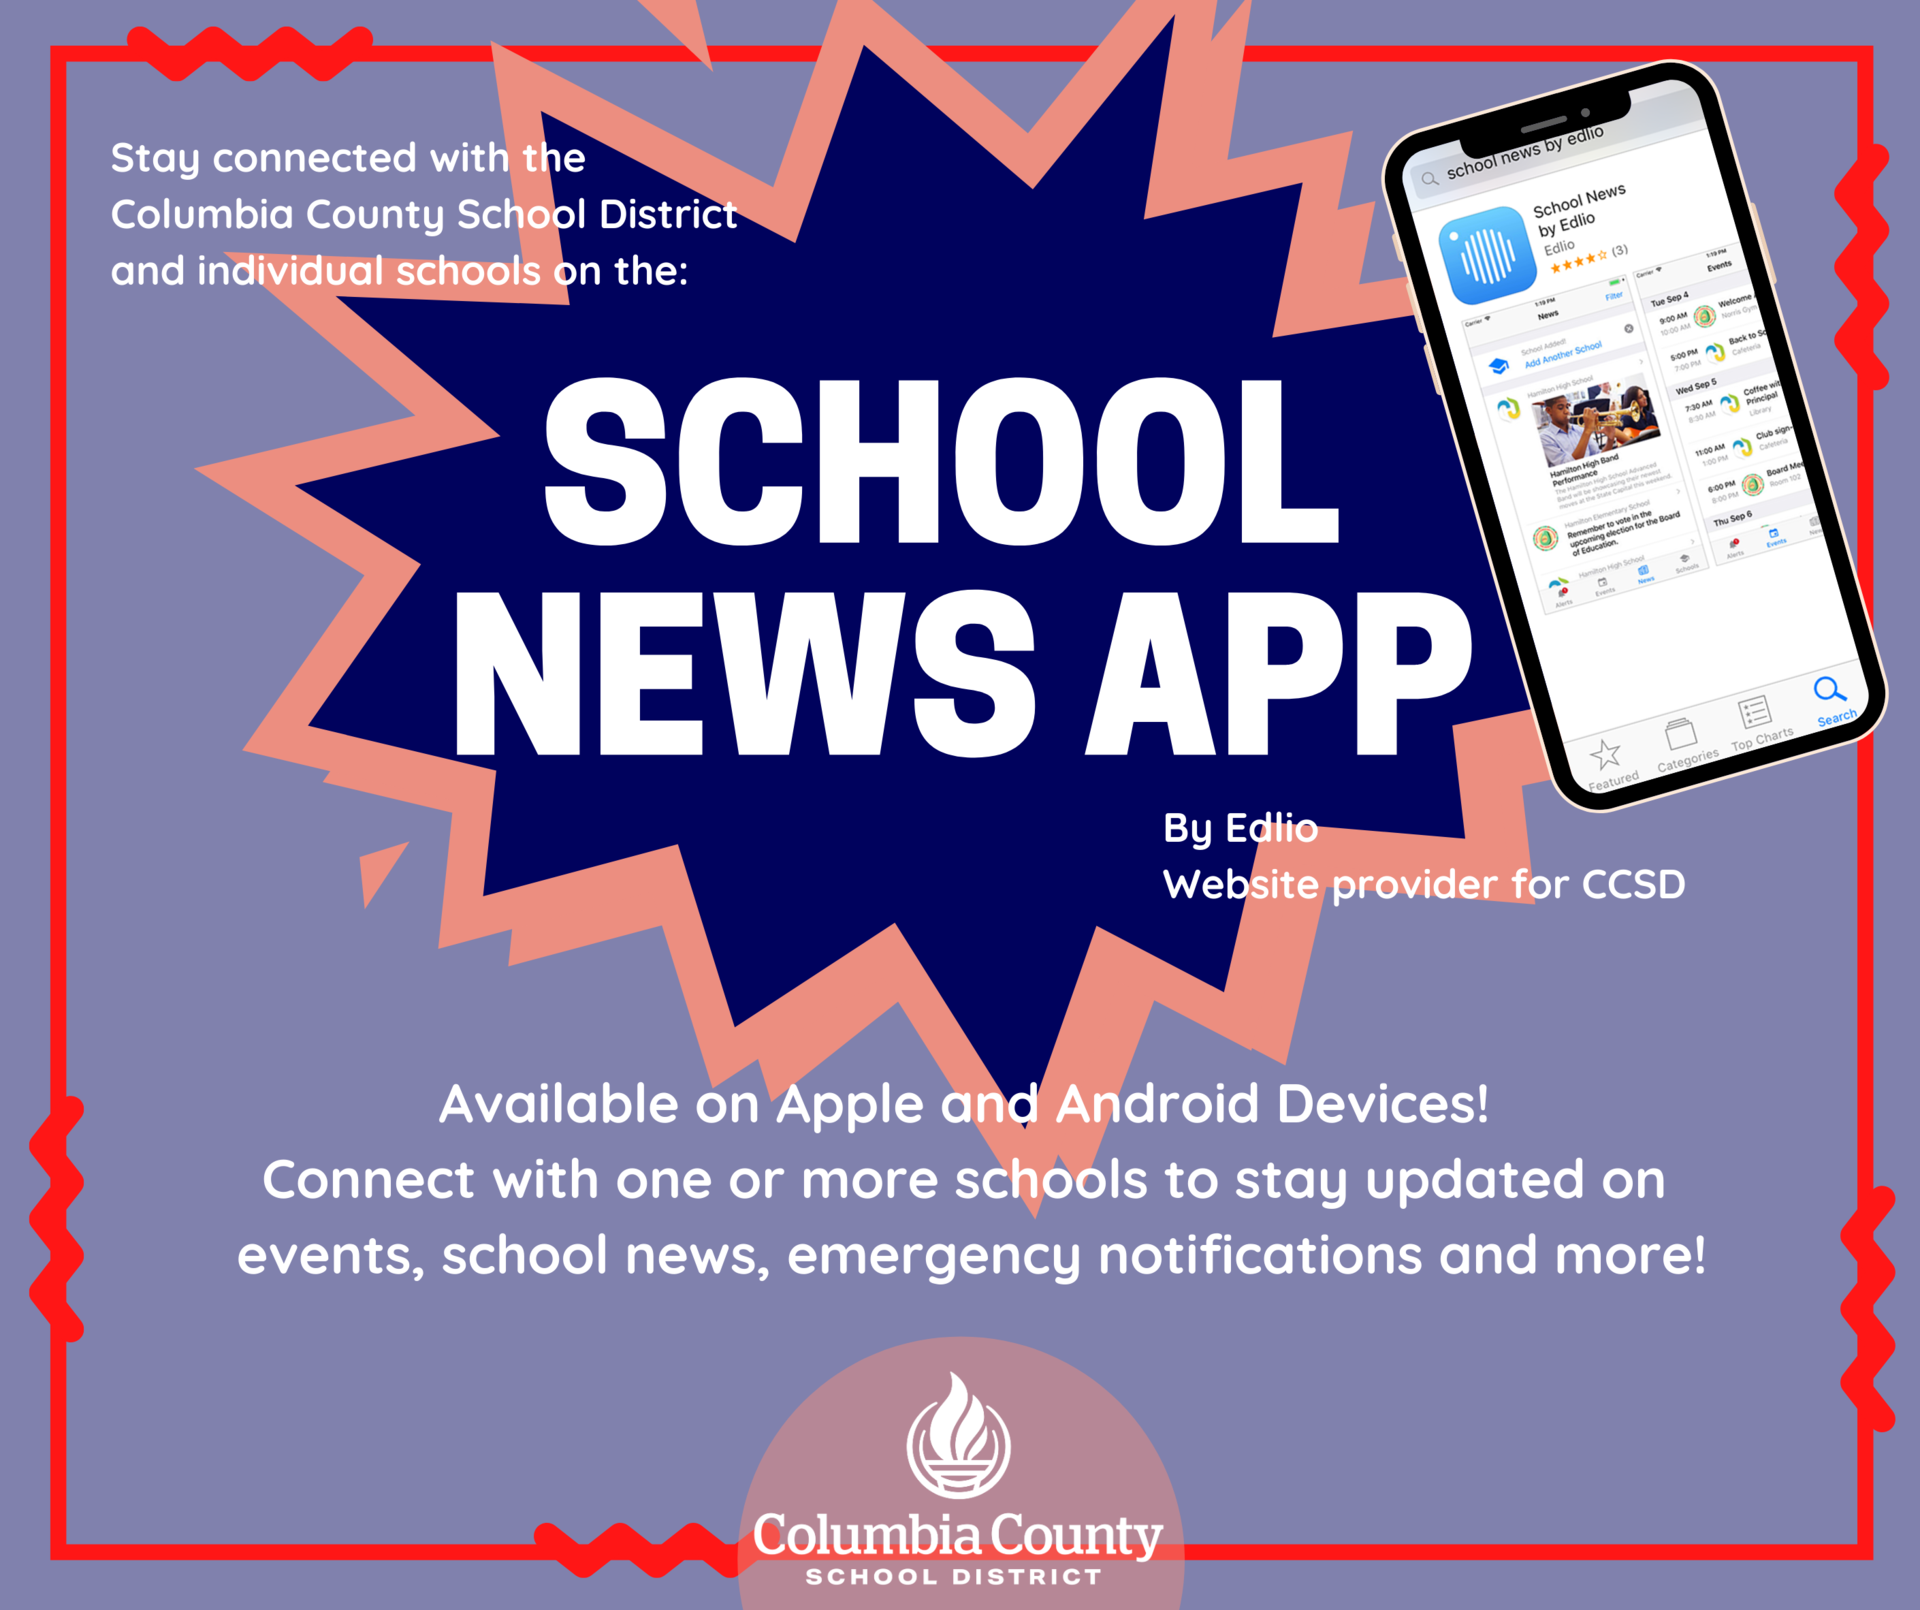 school news app by edlio graphic